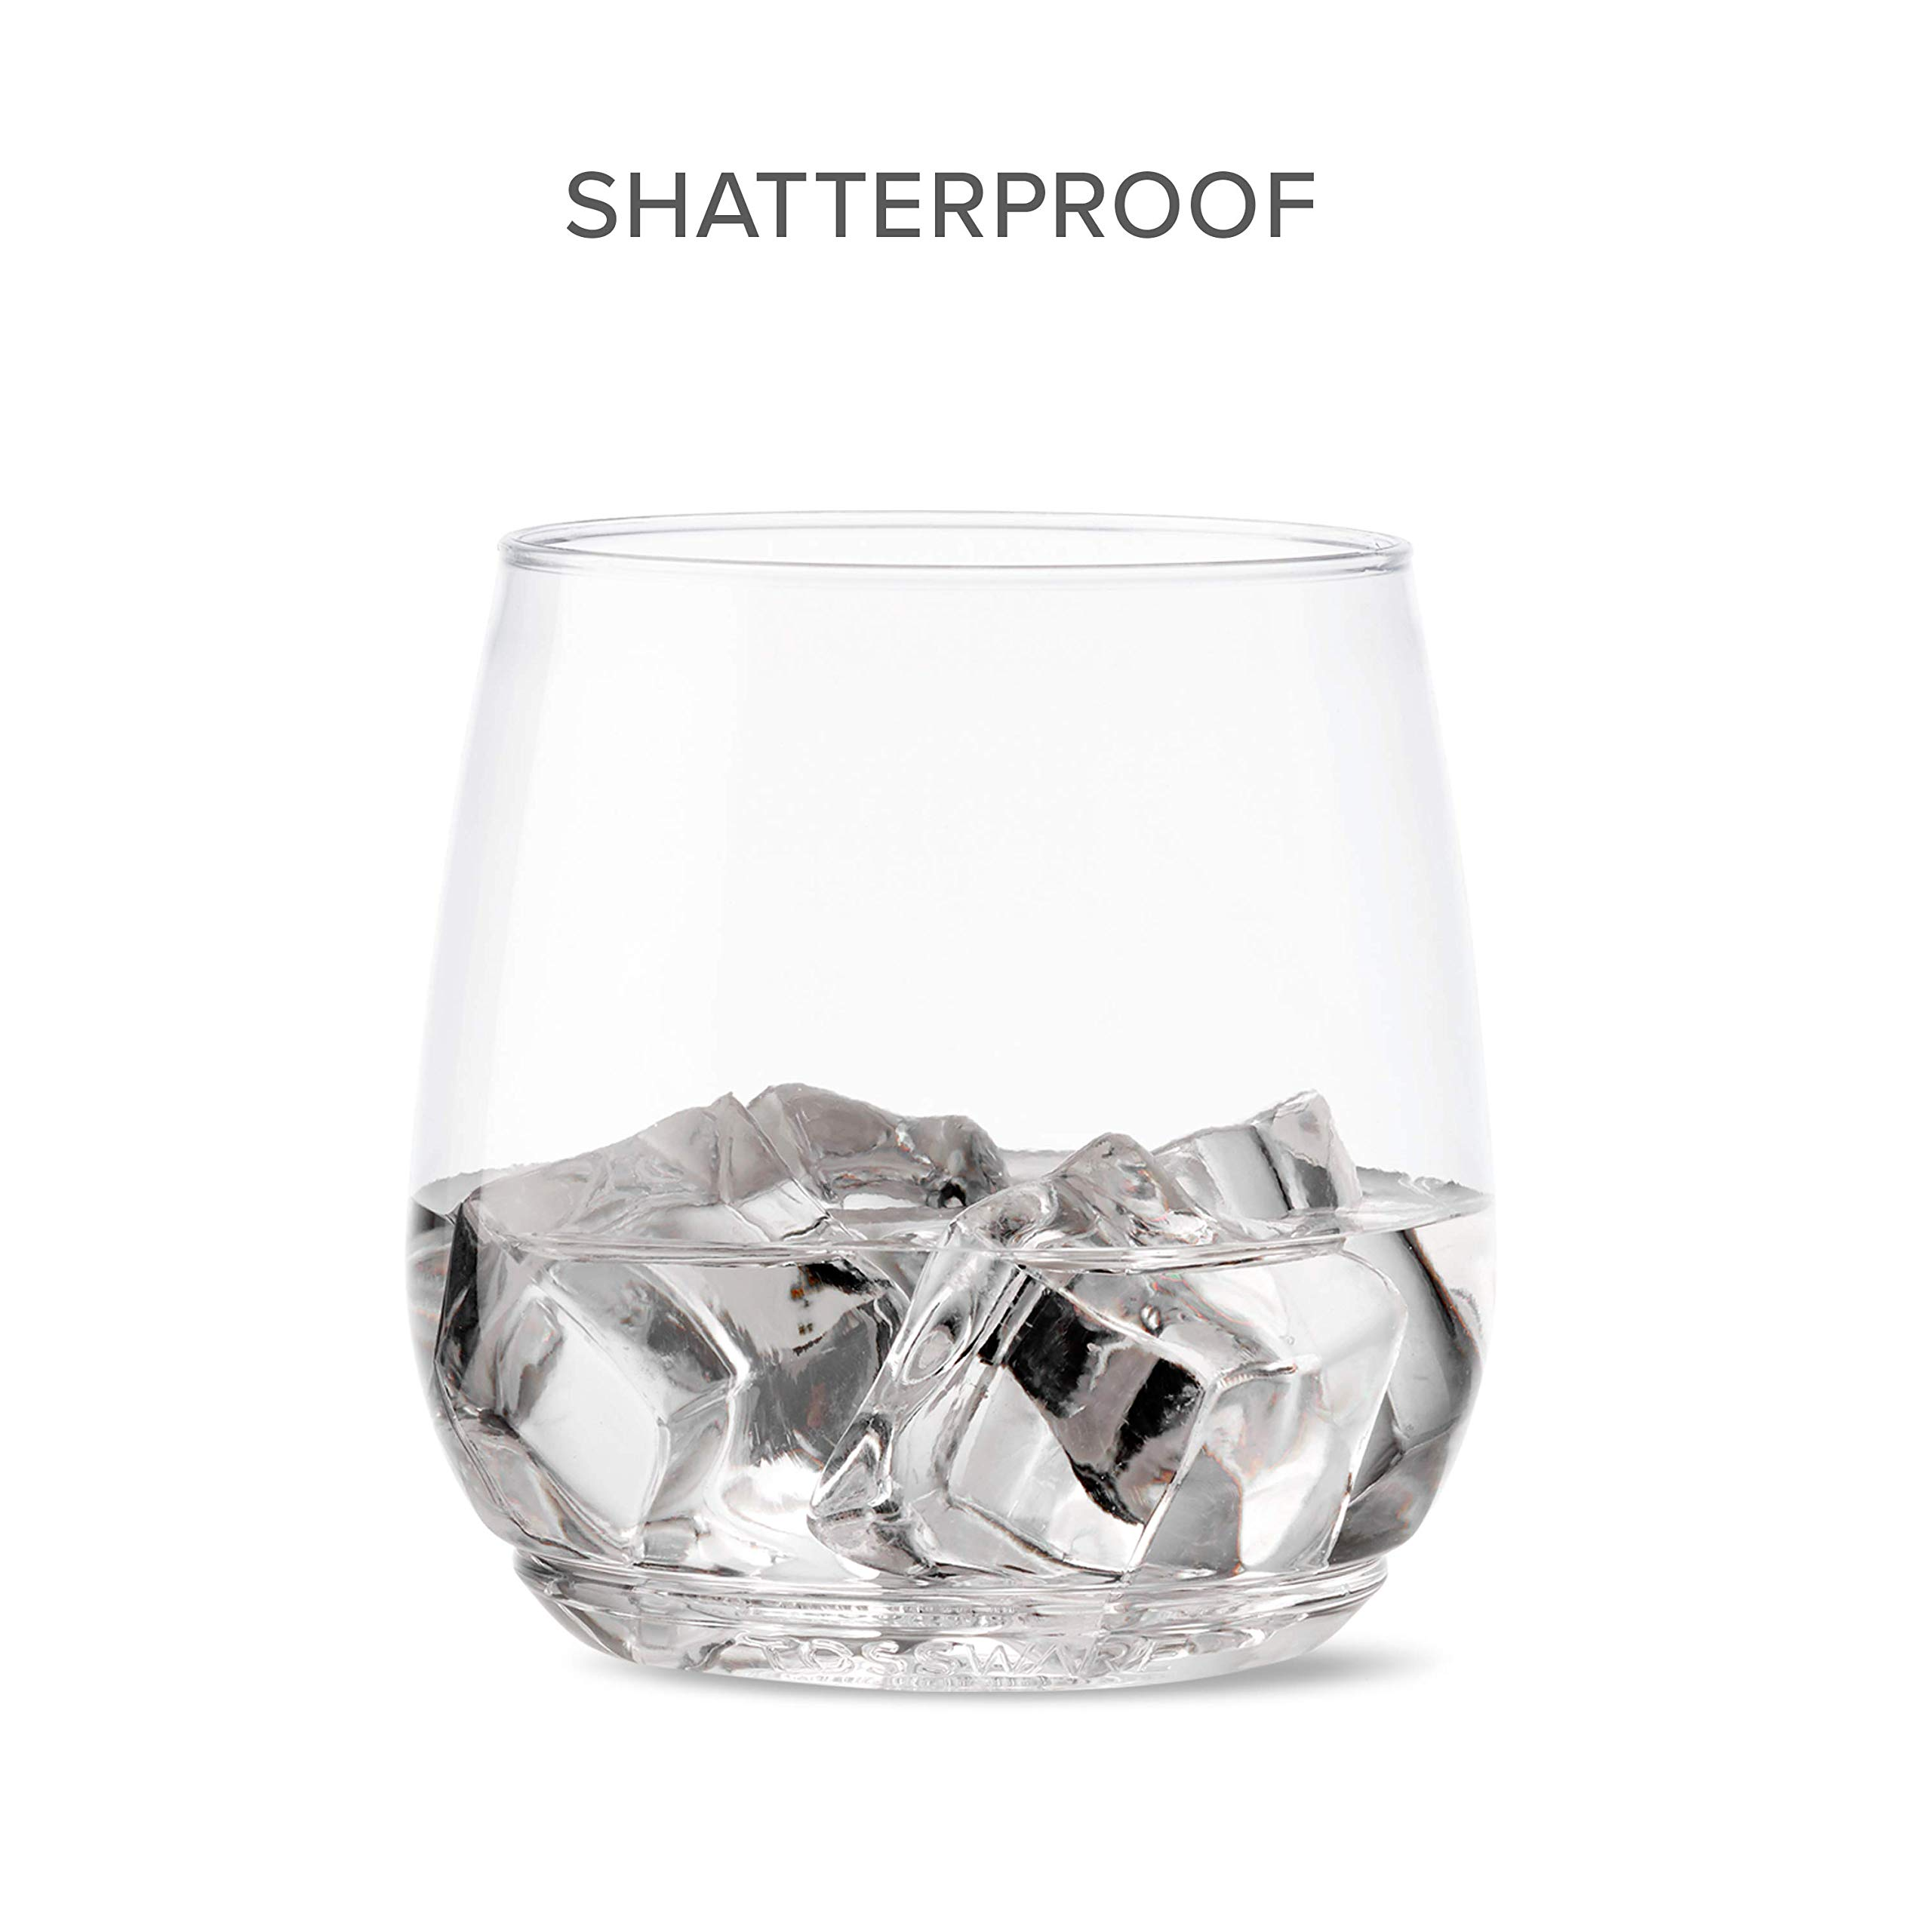 TOSSWARE 12oz Tumbler Jr - Set of 252 recyclable cocktail and whiskey plastic cup - stemless, shatterproof and BPA-free, Clear Glass by TOSSWARE (Image #6)